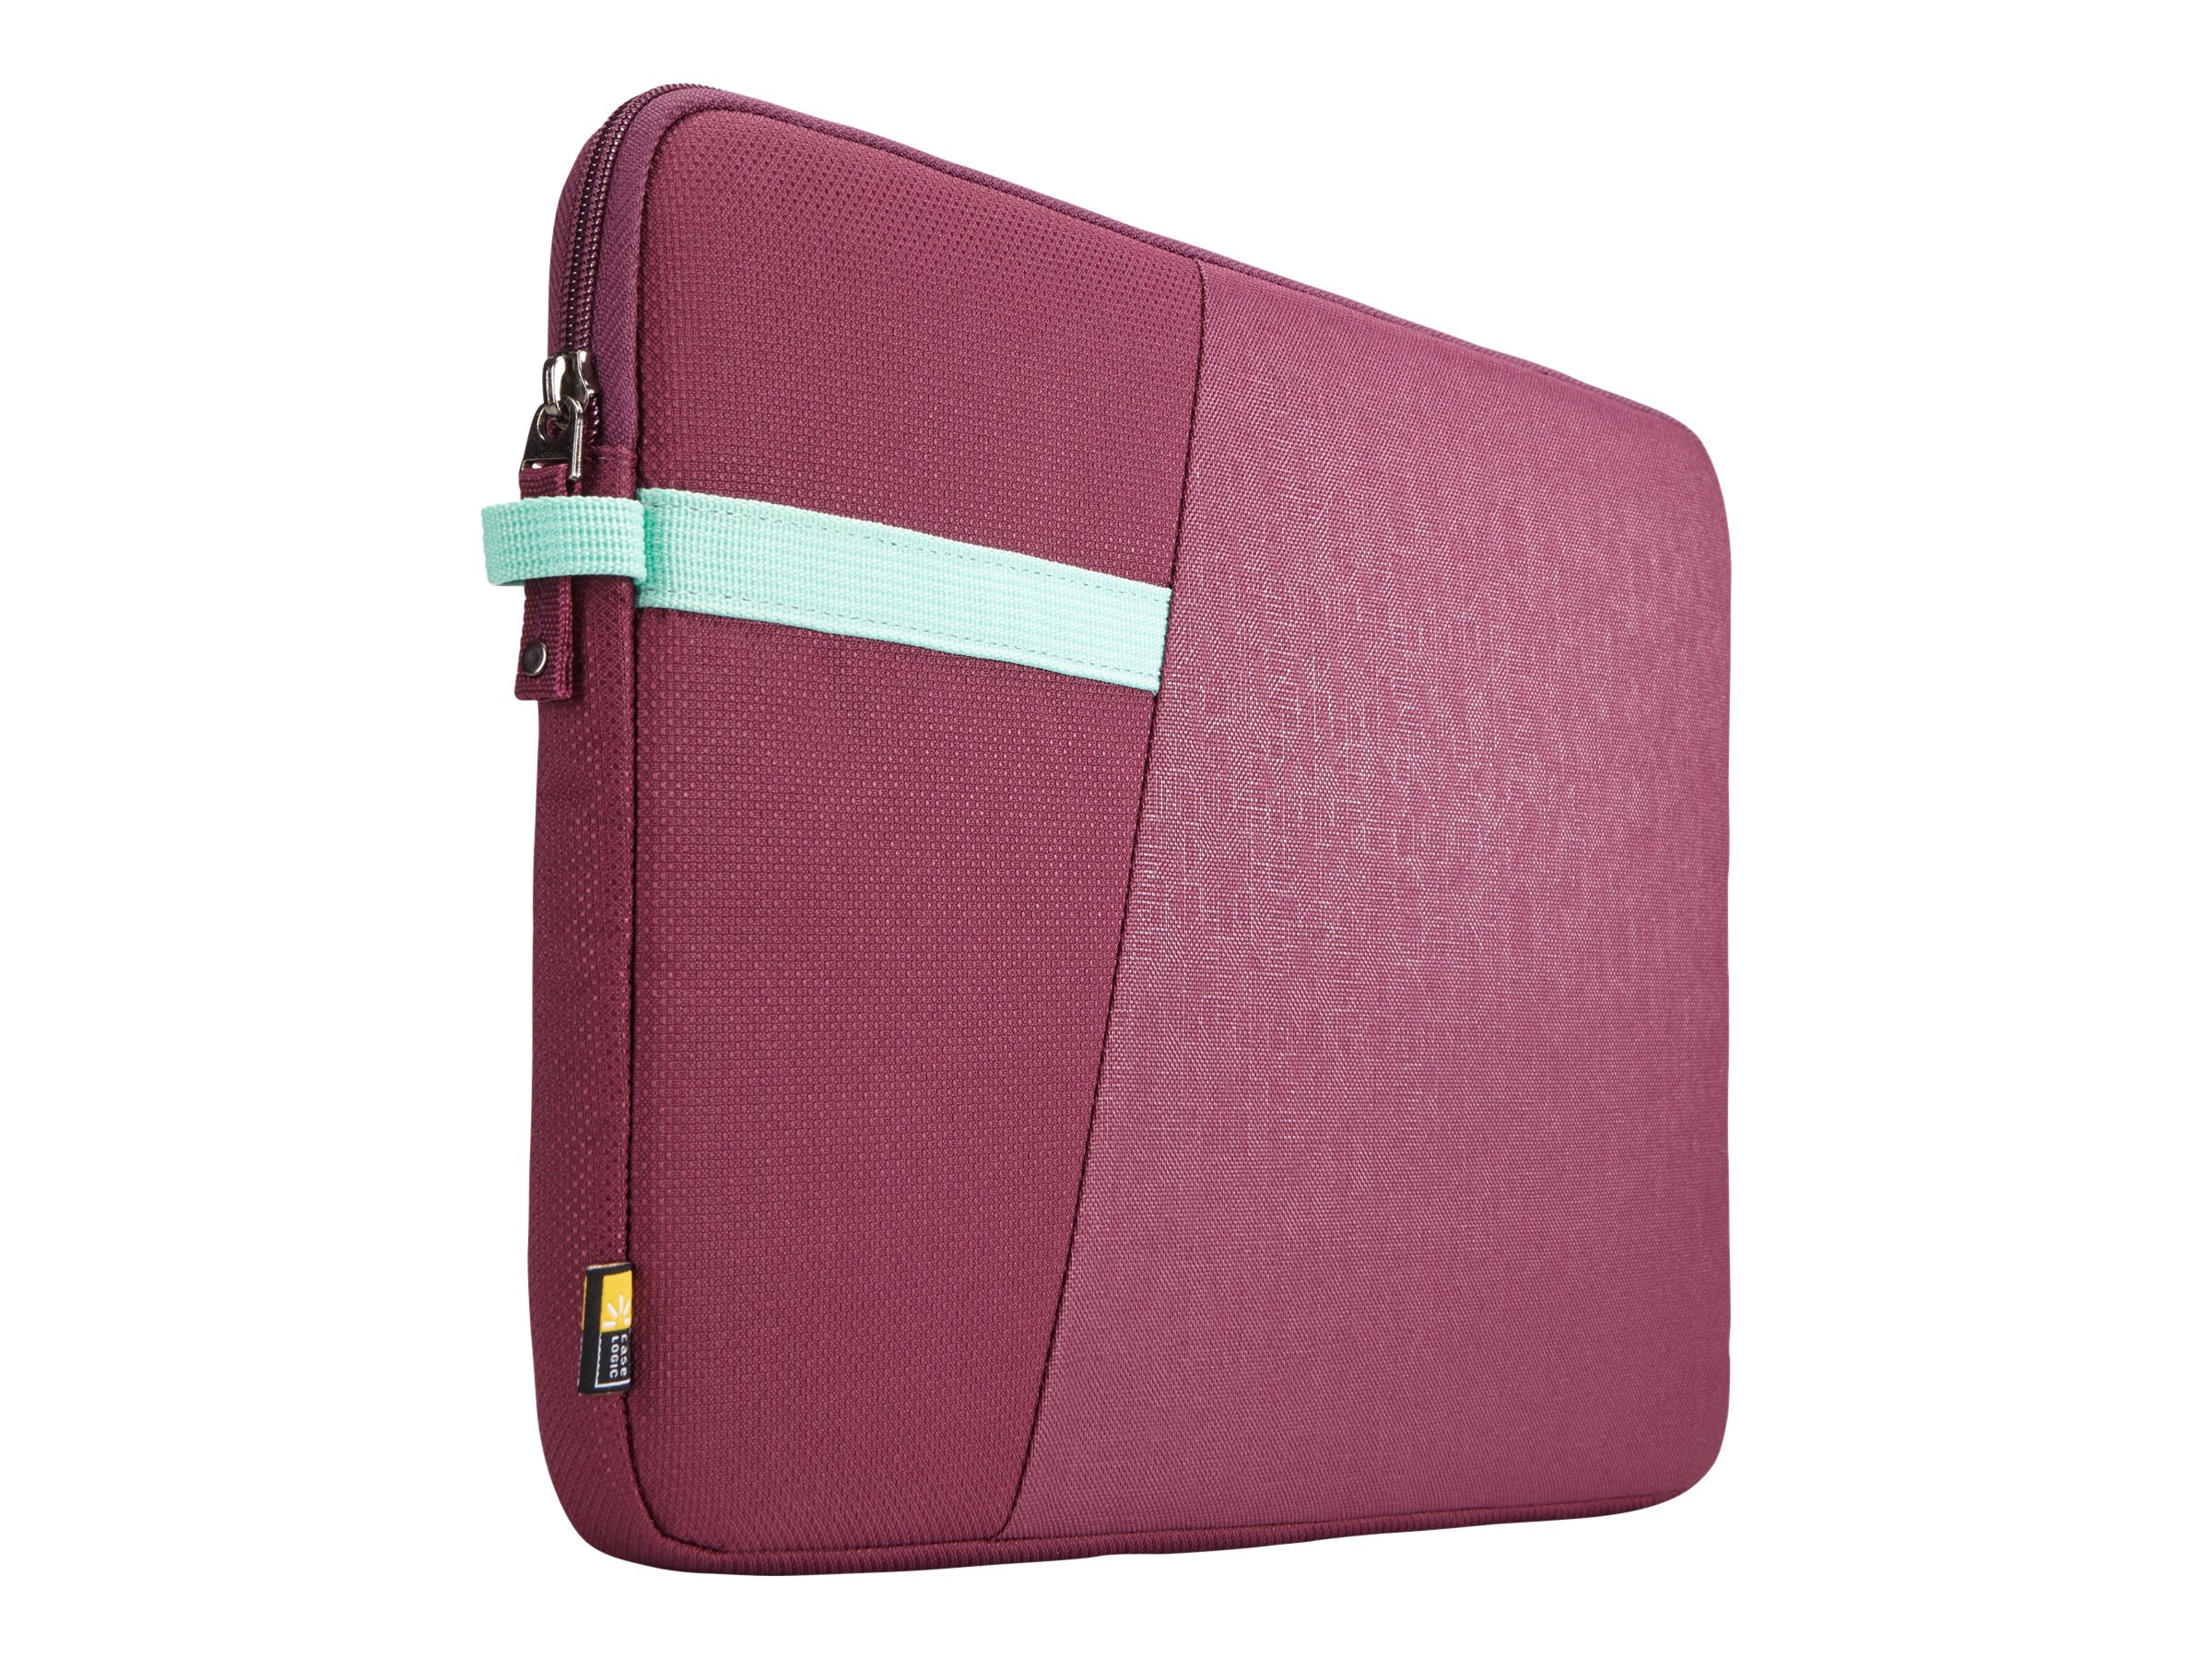 Case Logic Ibira 11 Laptop Sleeve, Acai